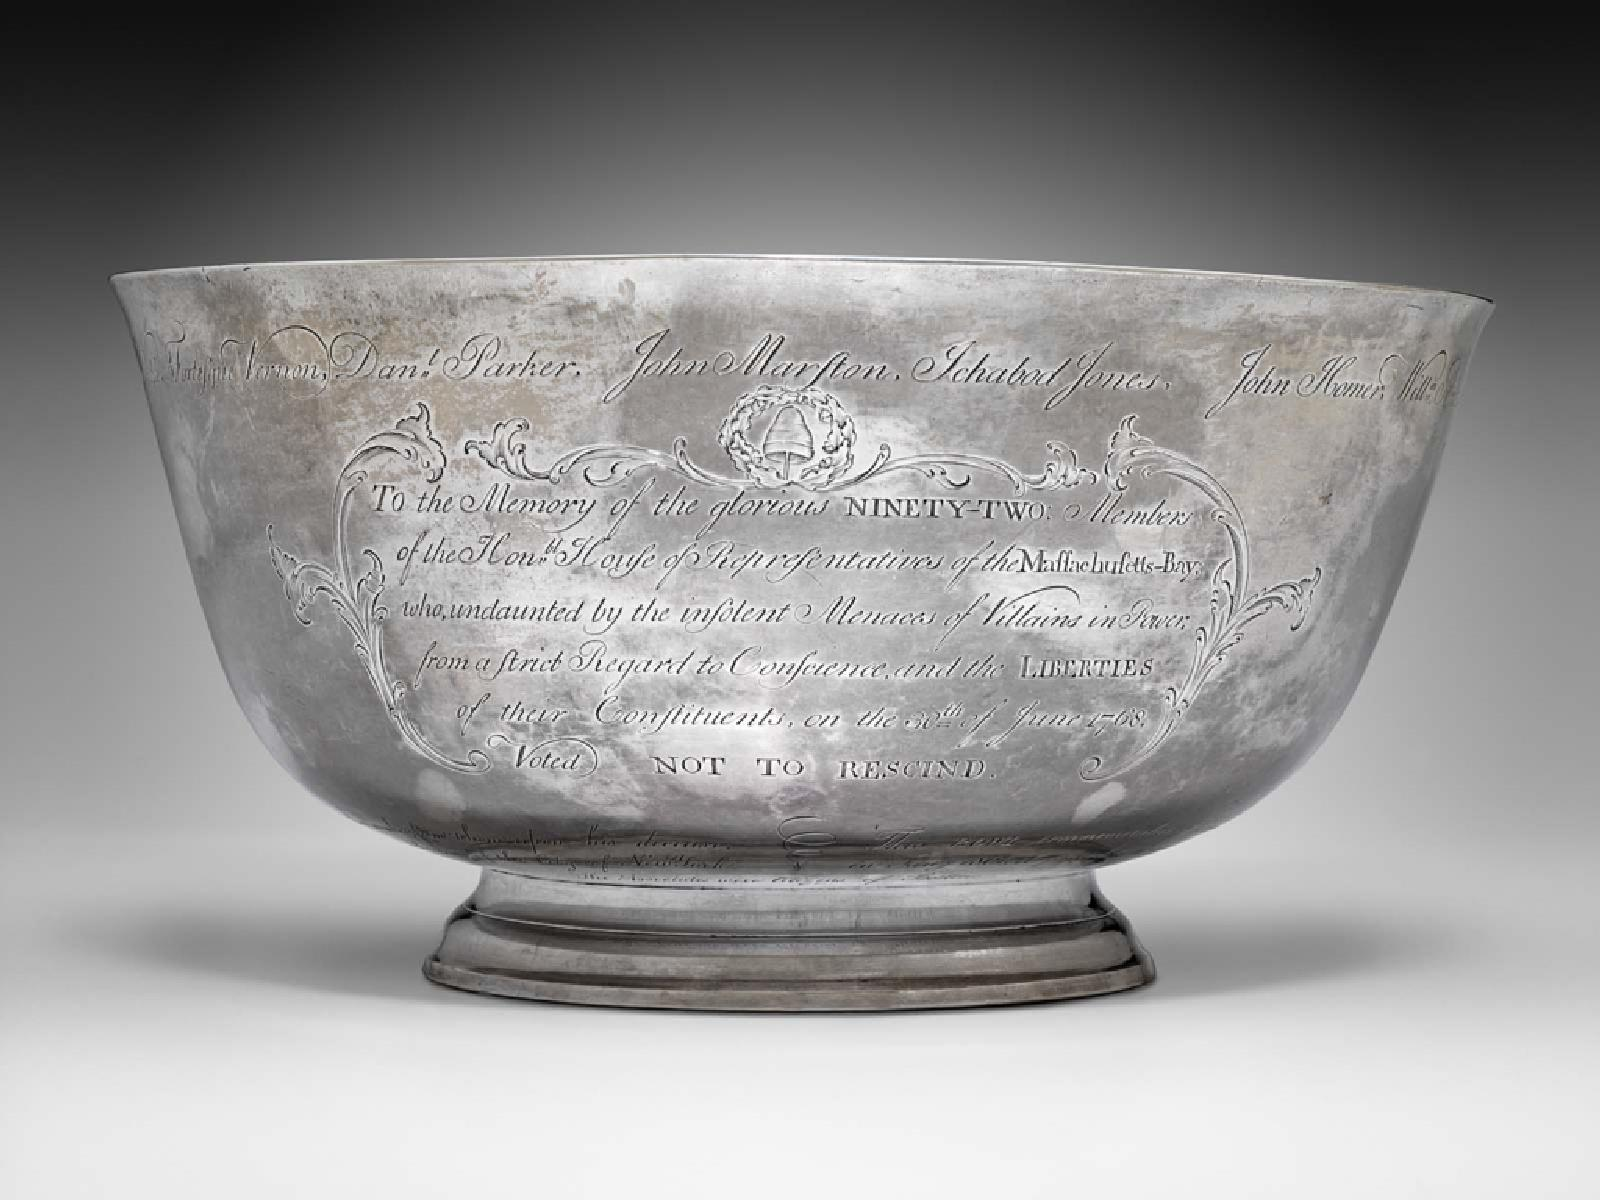 Sons of Liberty bowl, by Paul Revere, 1768.